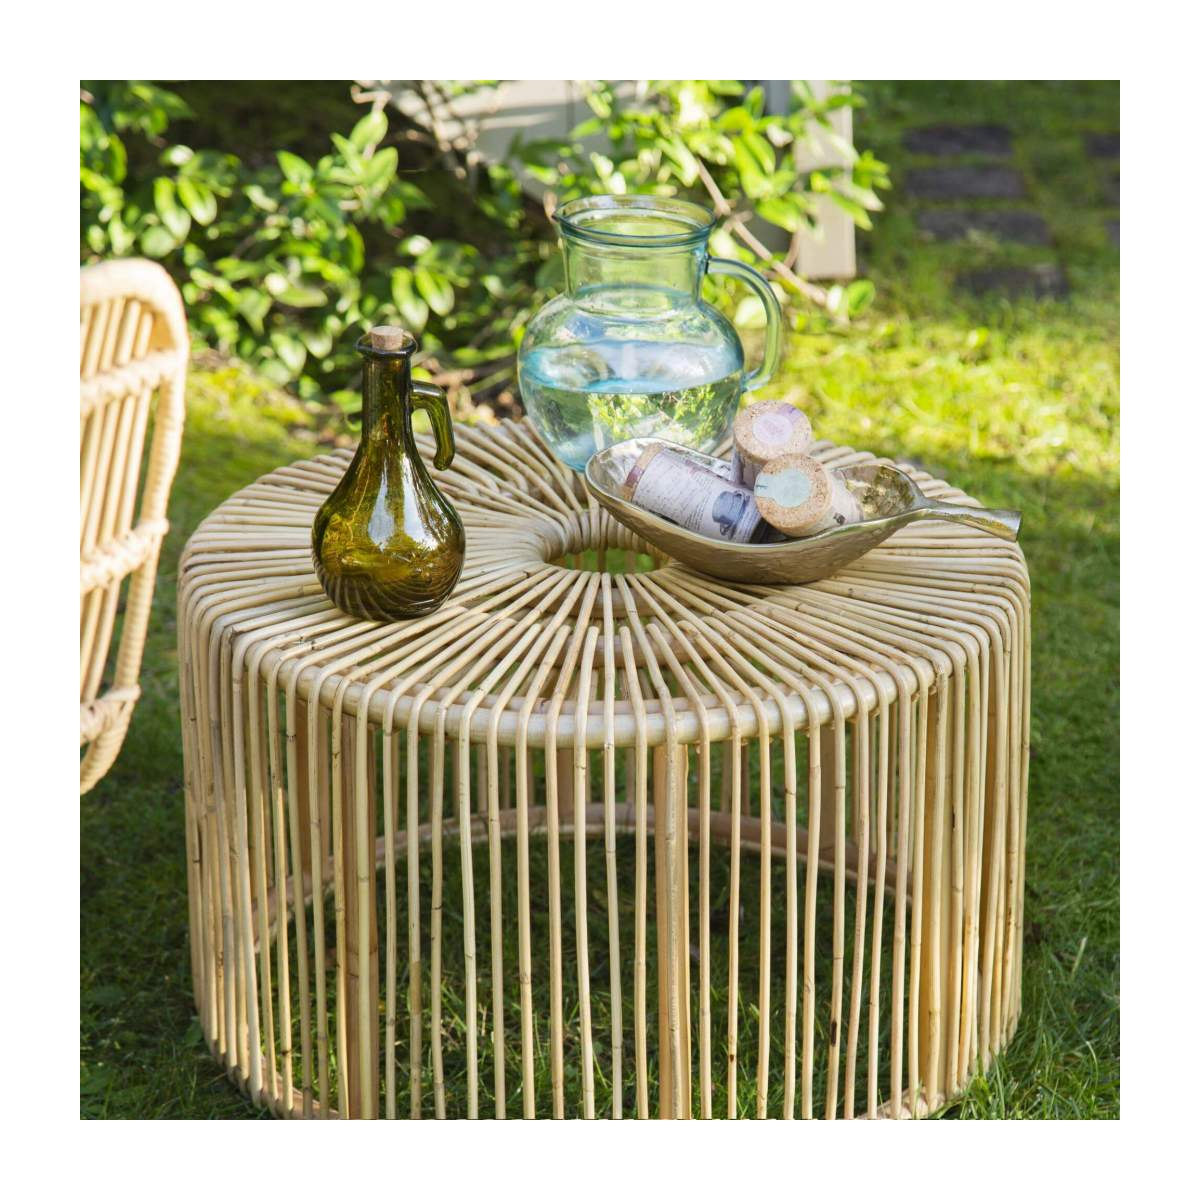 Table basse ronde en rotin - Naturel - Design by Marie Matsuura n°3